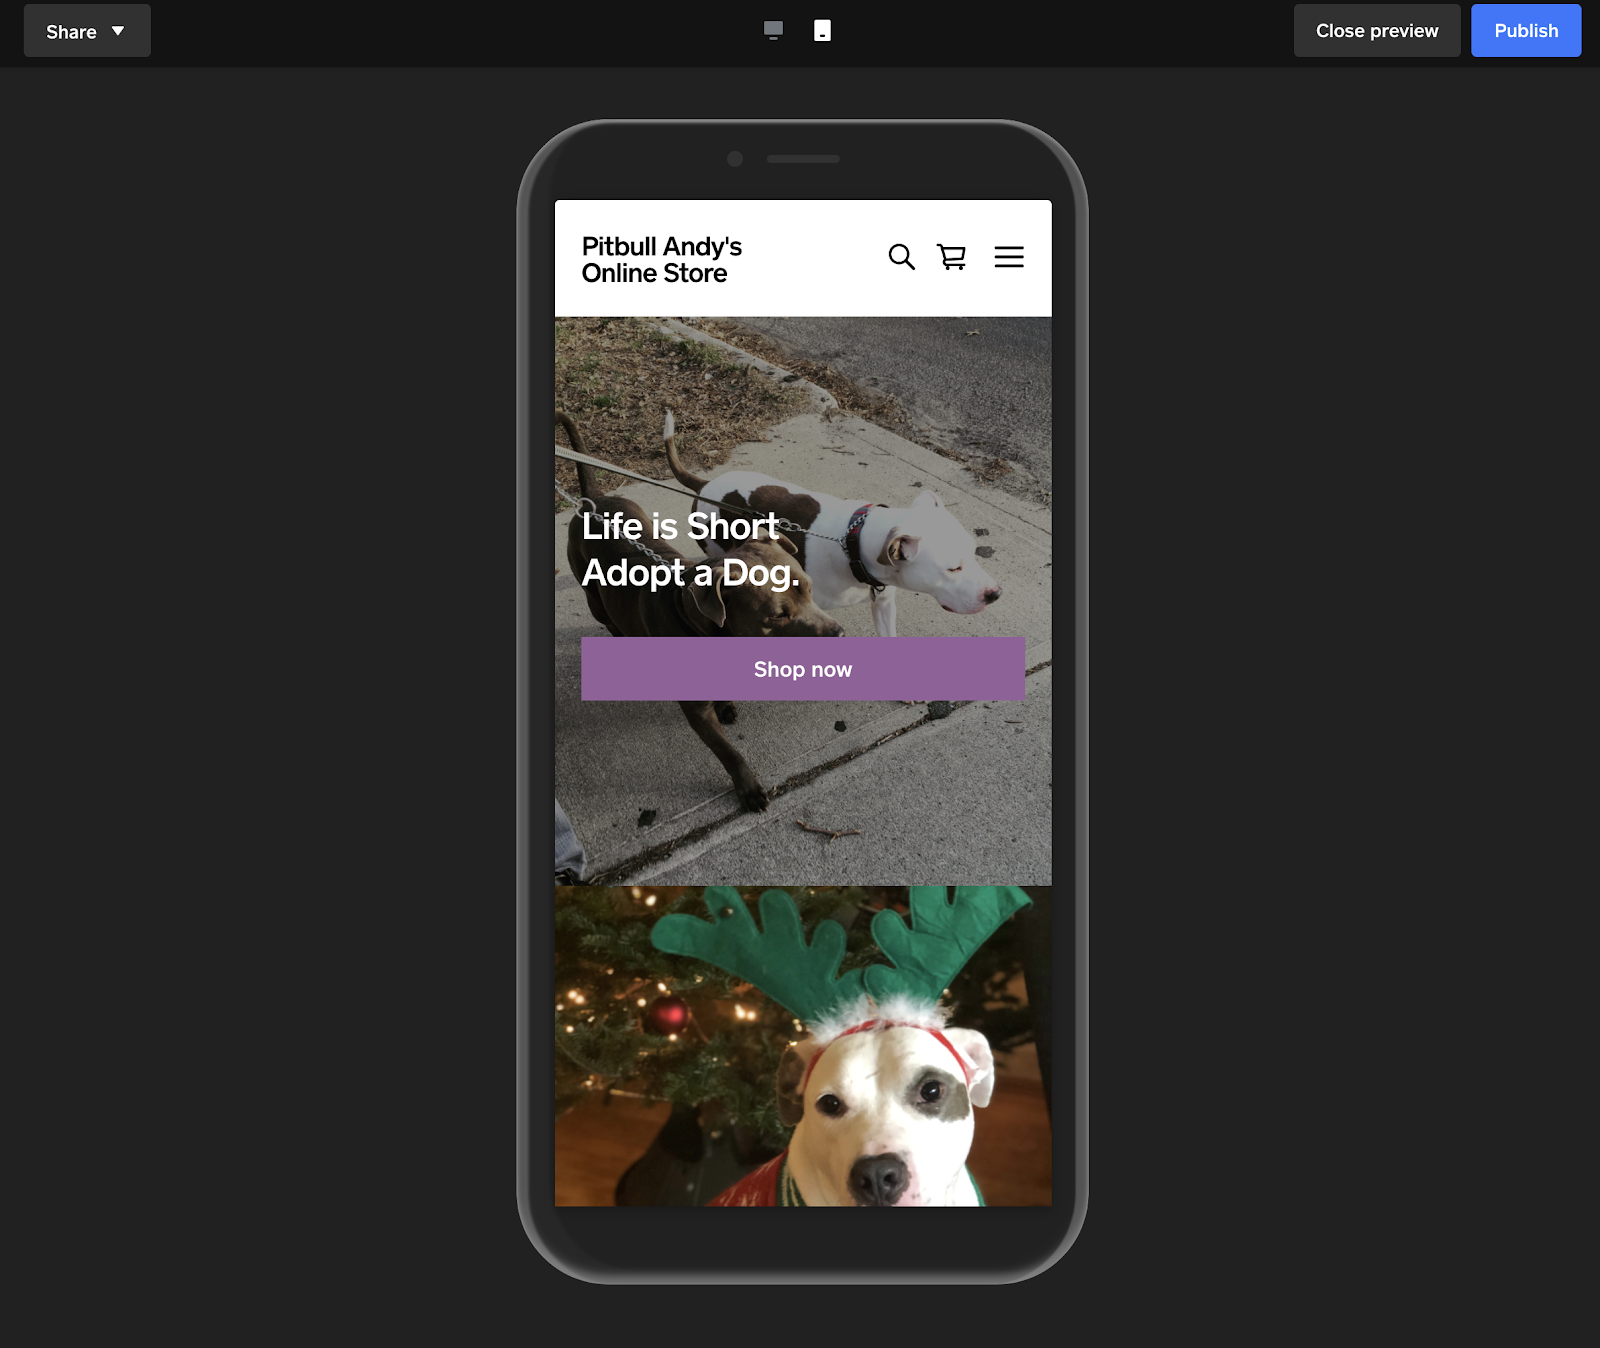 Square in mobile view with pitbulls